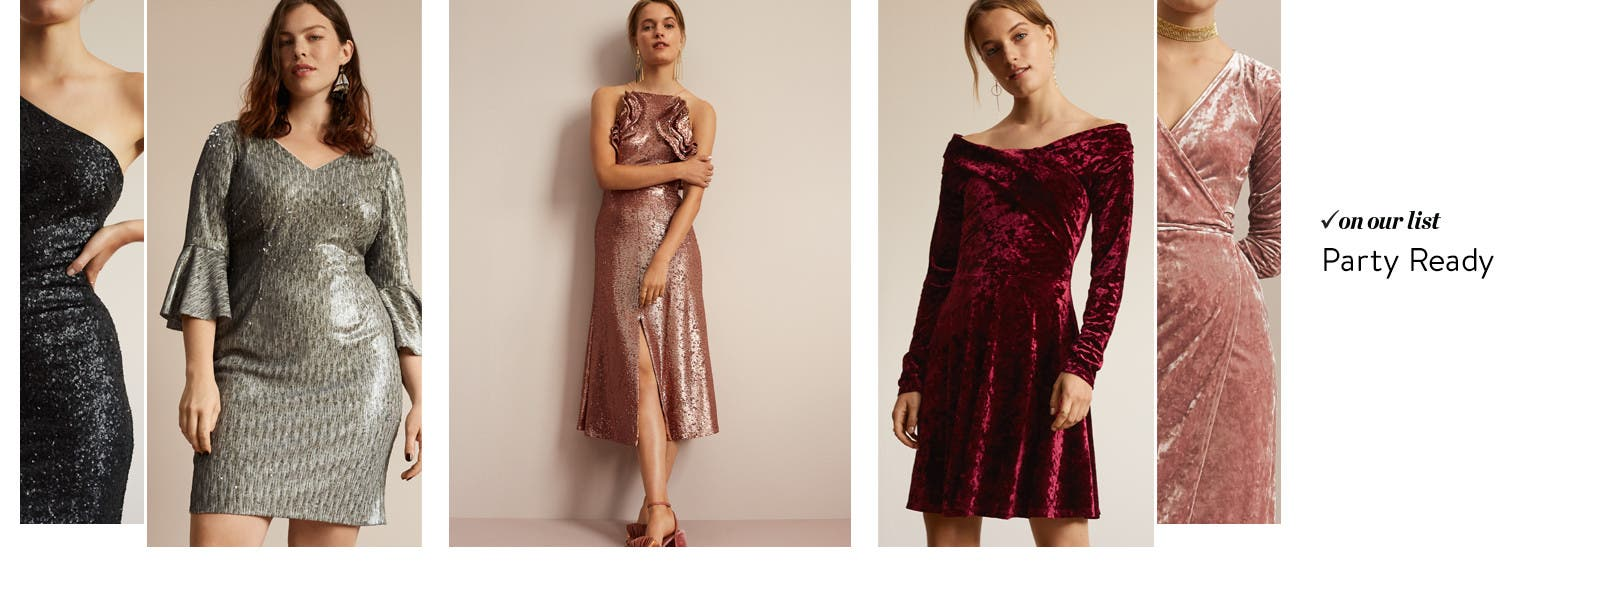 The party dress edit.